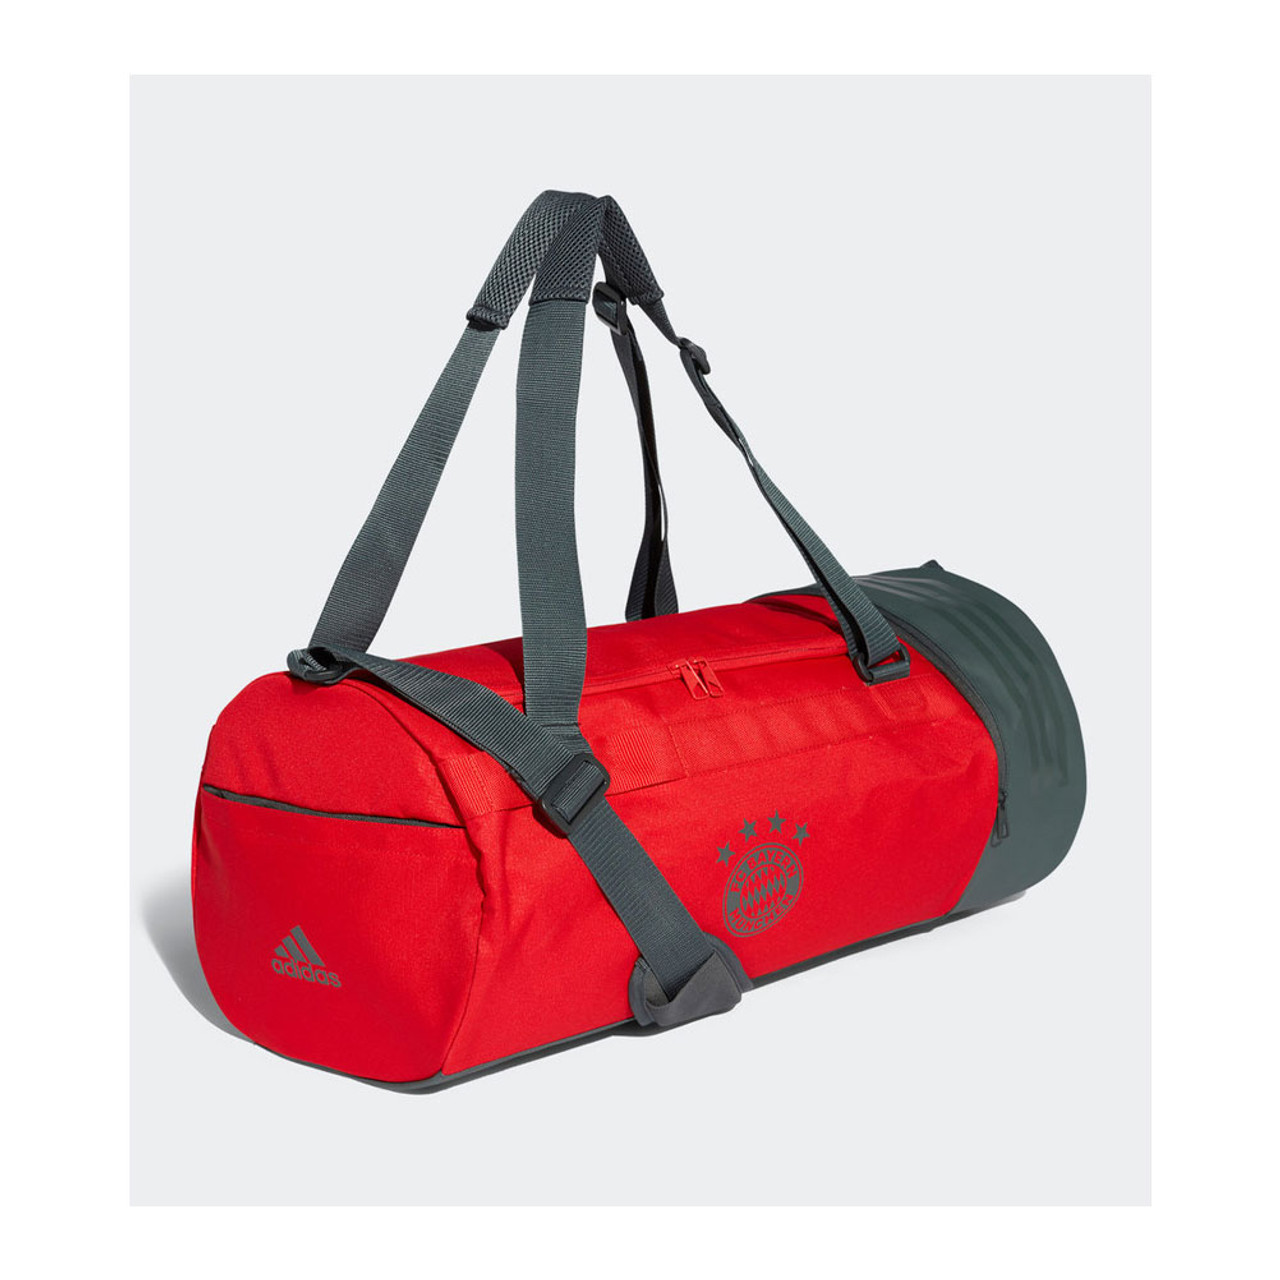 11a8c4919dd8 ADIDAS Bayern Munich football holdall duffle bag  red  - Eggcatcher Rugby  (UK)